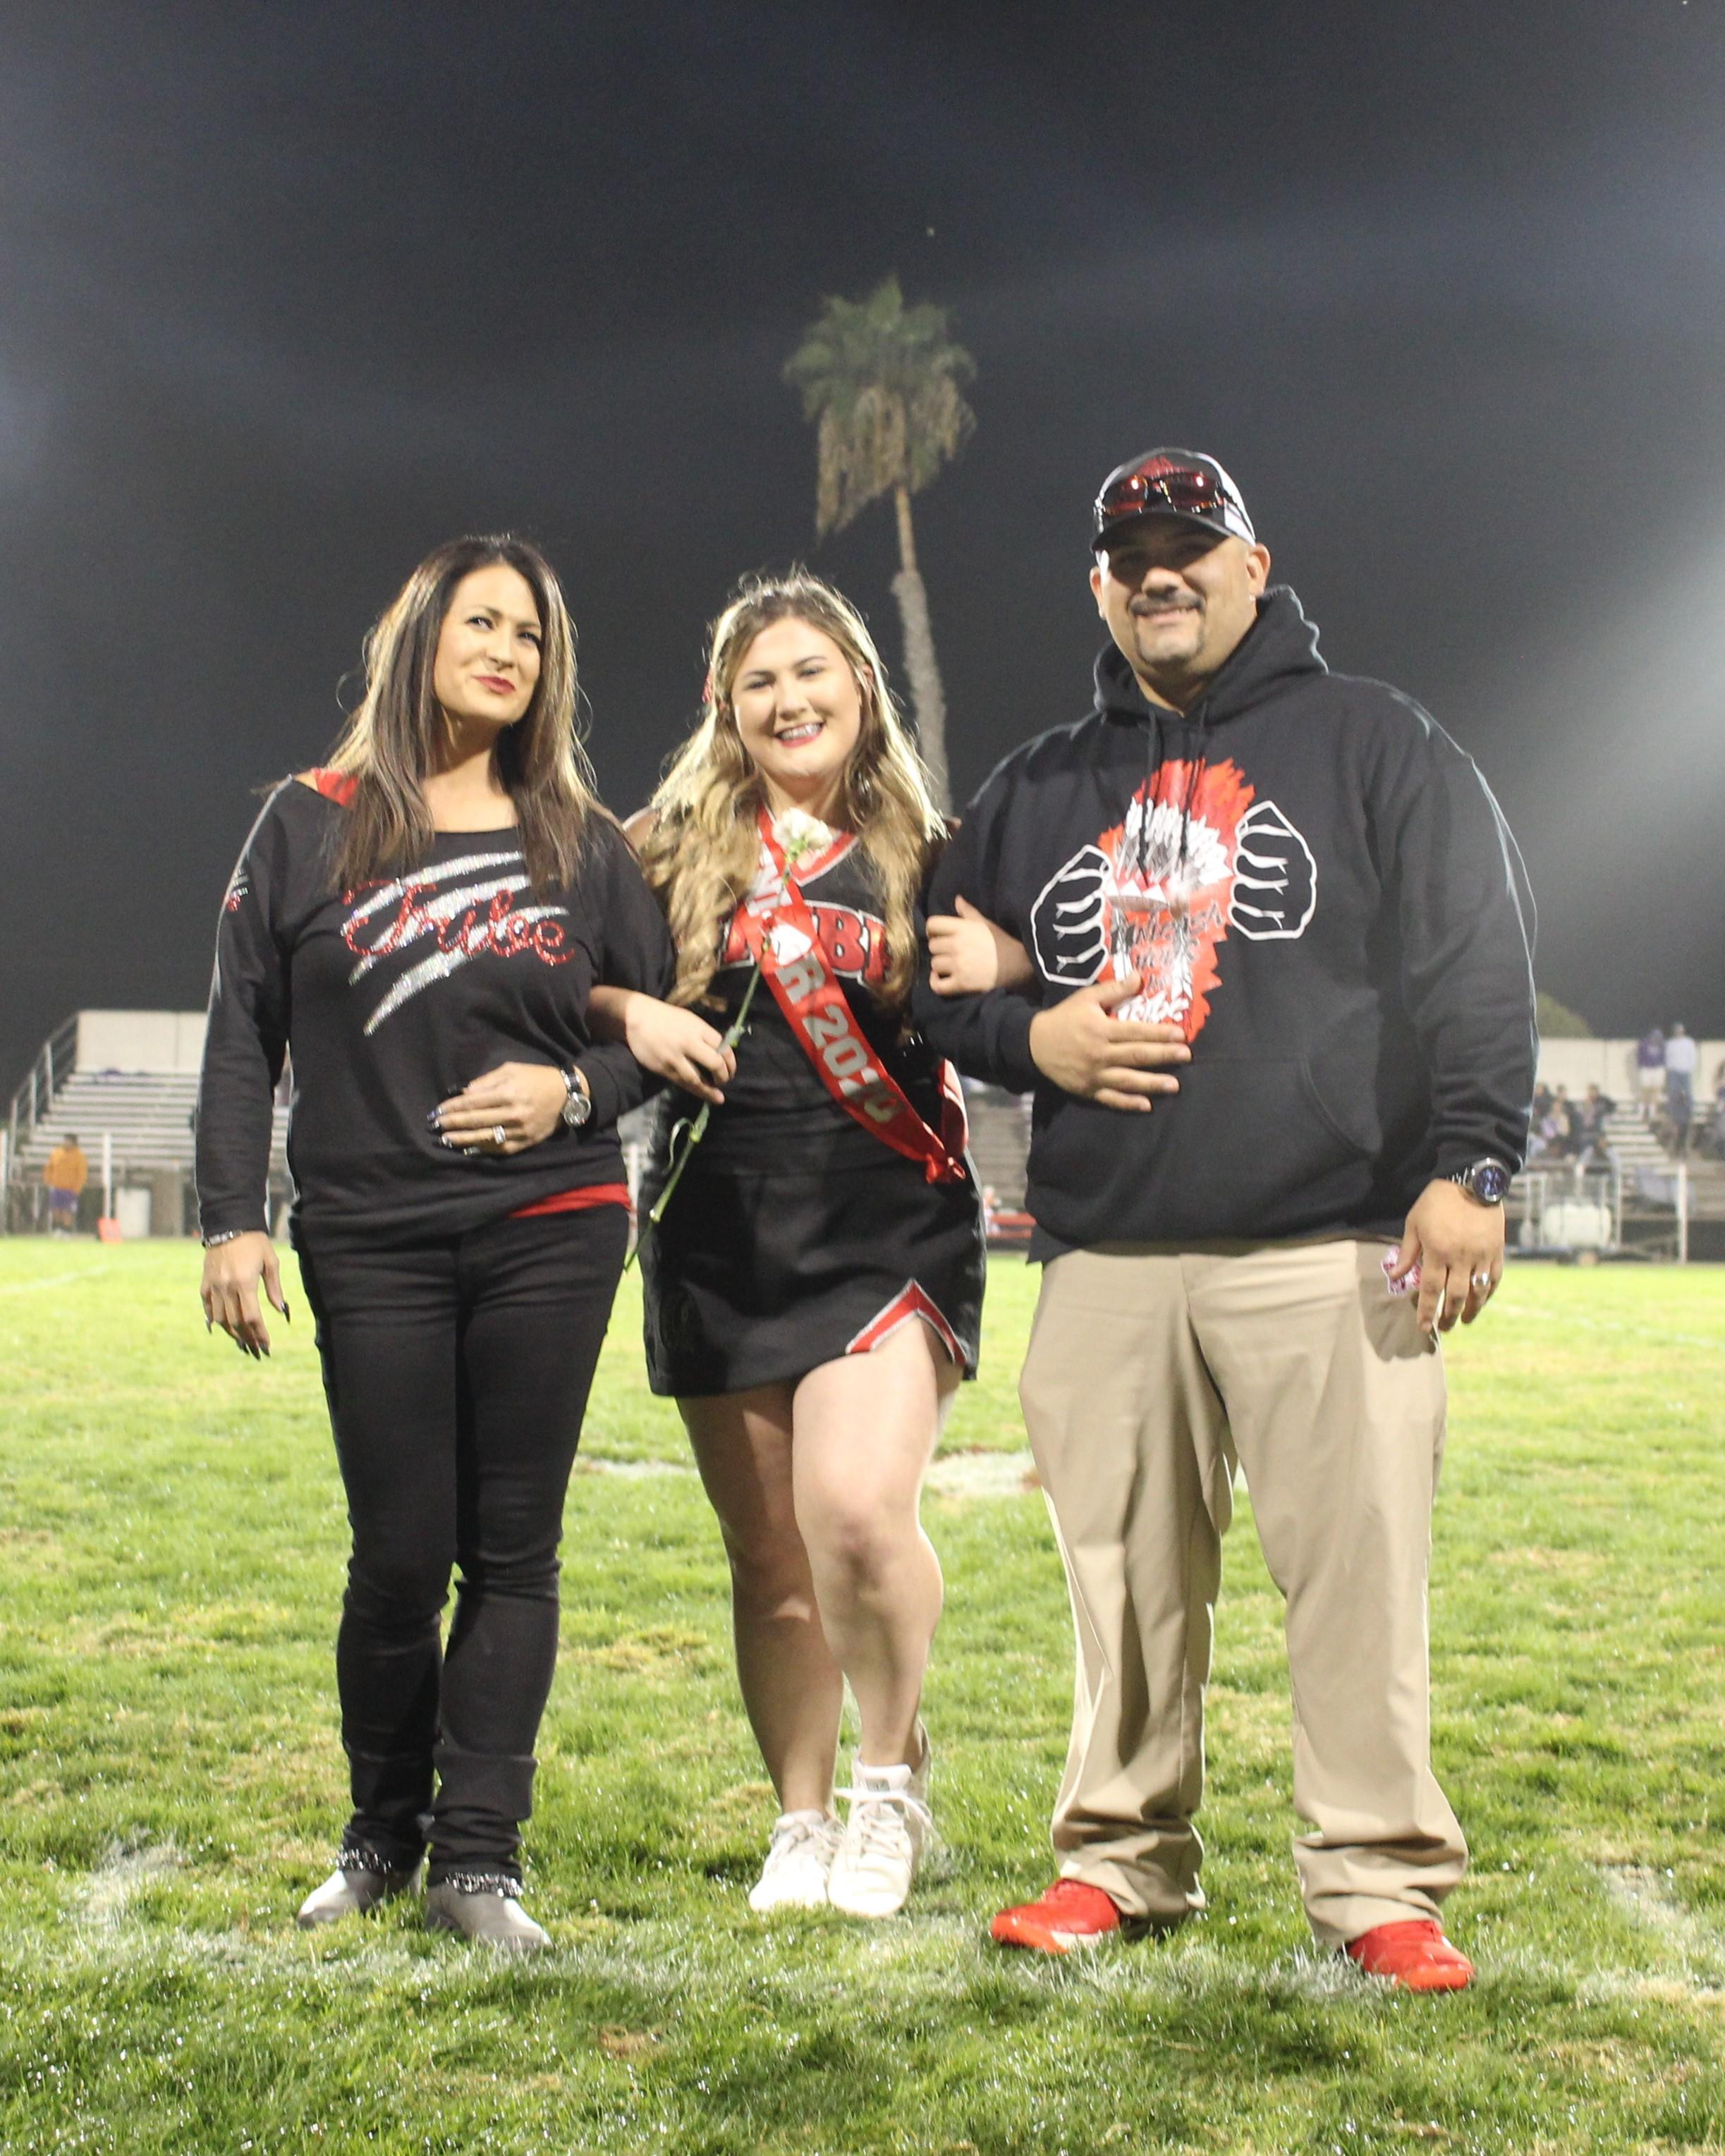 Senior cheerleader Jalyssa Escoto and her escorts.